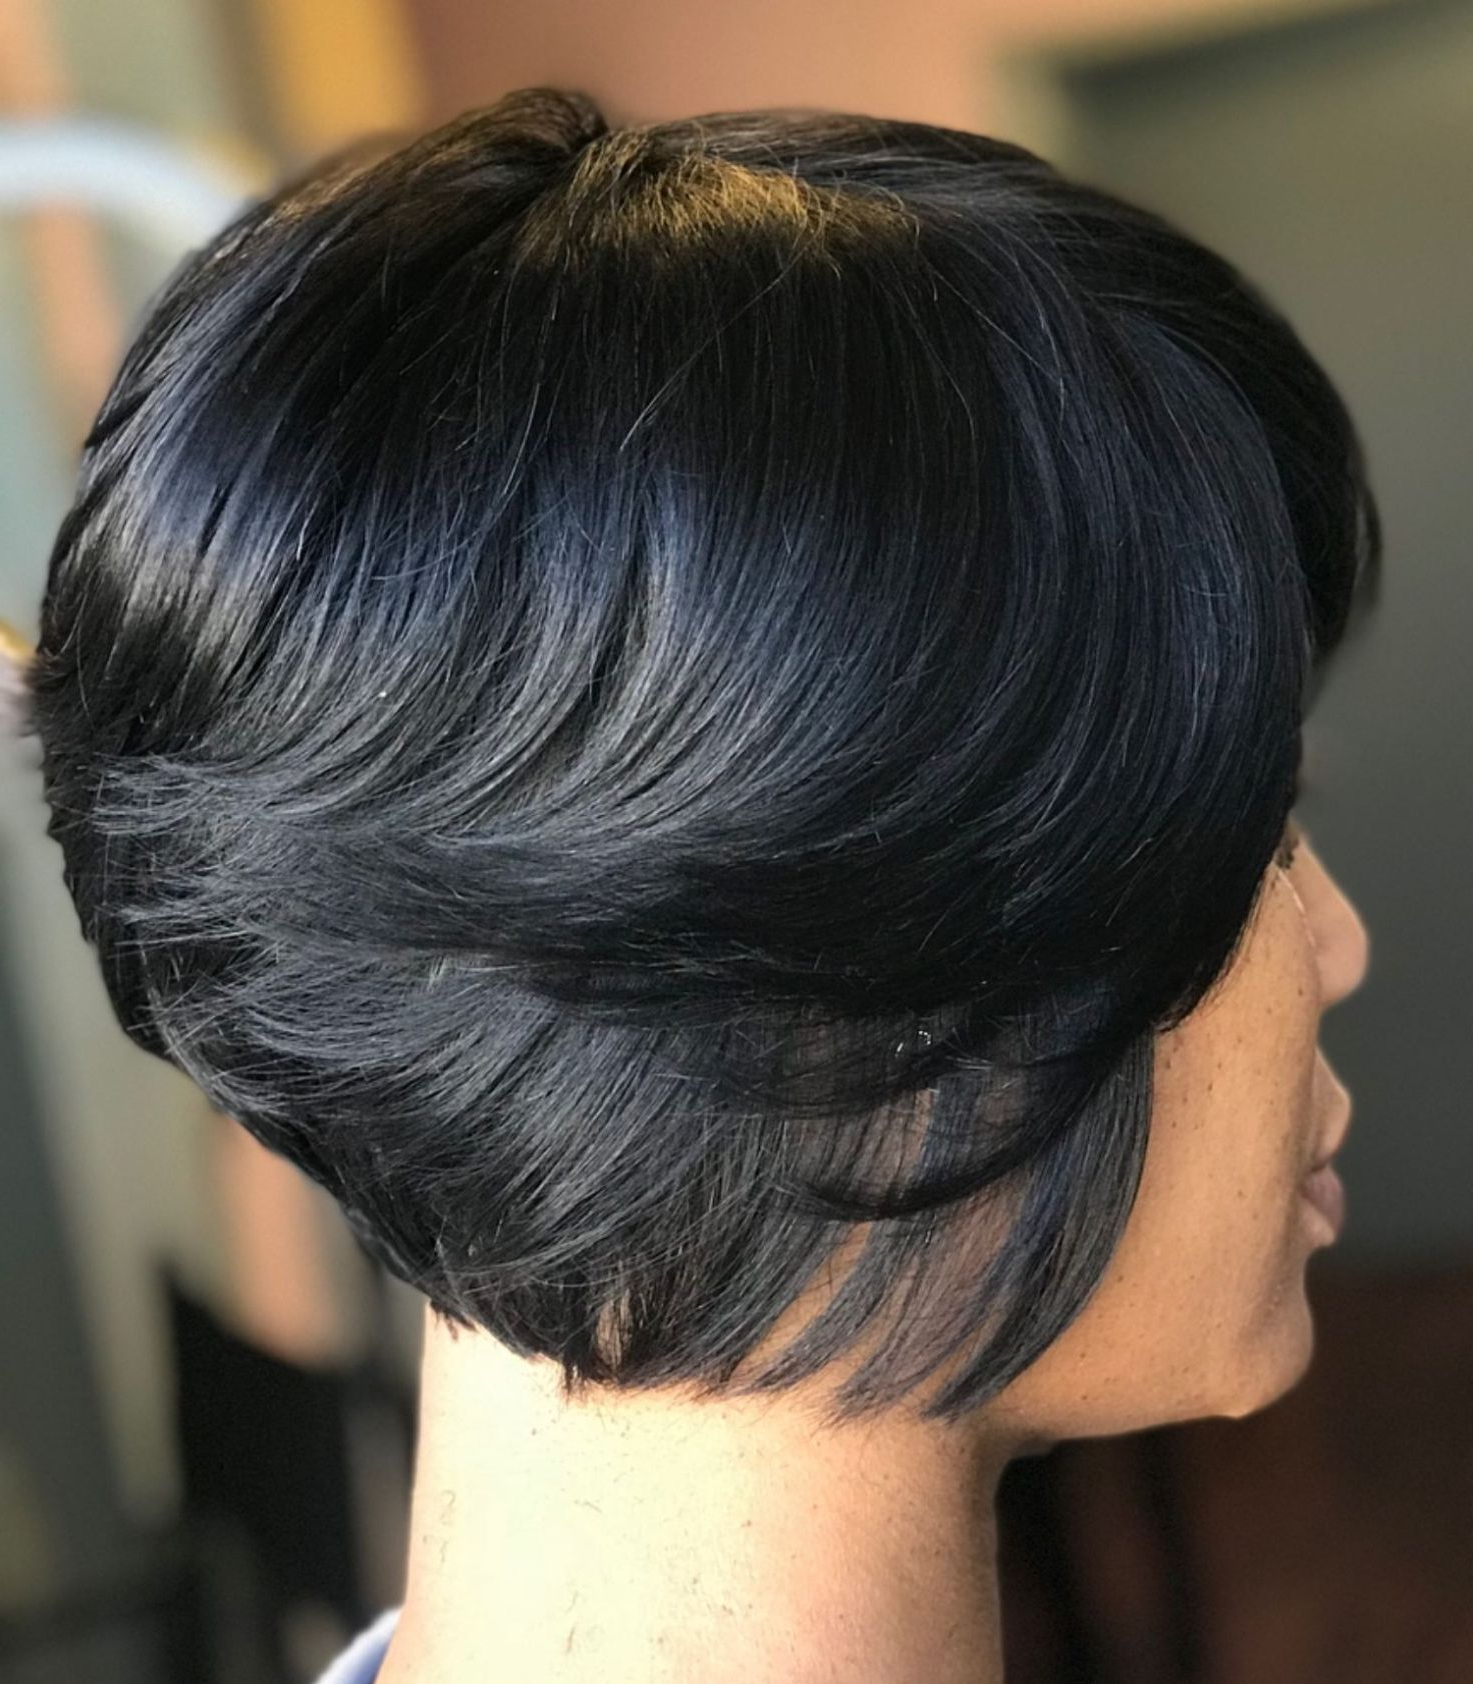 60 Showiest Bob Haircuts For Black Women | Natural Hairstyles With Regard To Black Short Layered Hairstyles (View 23 of 25)